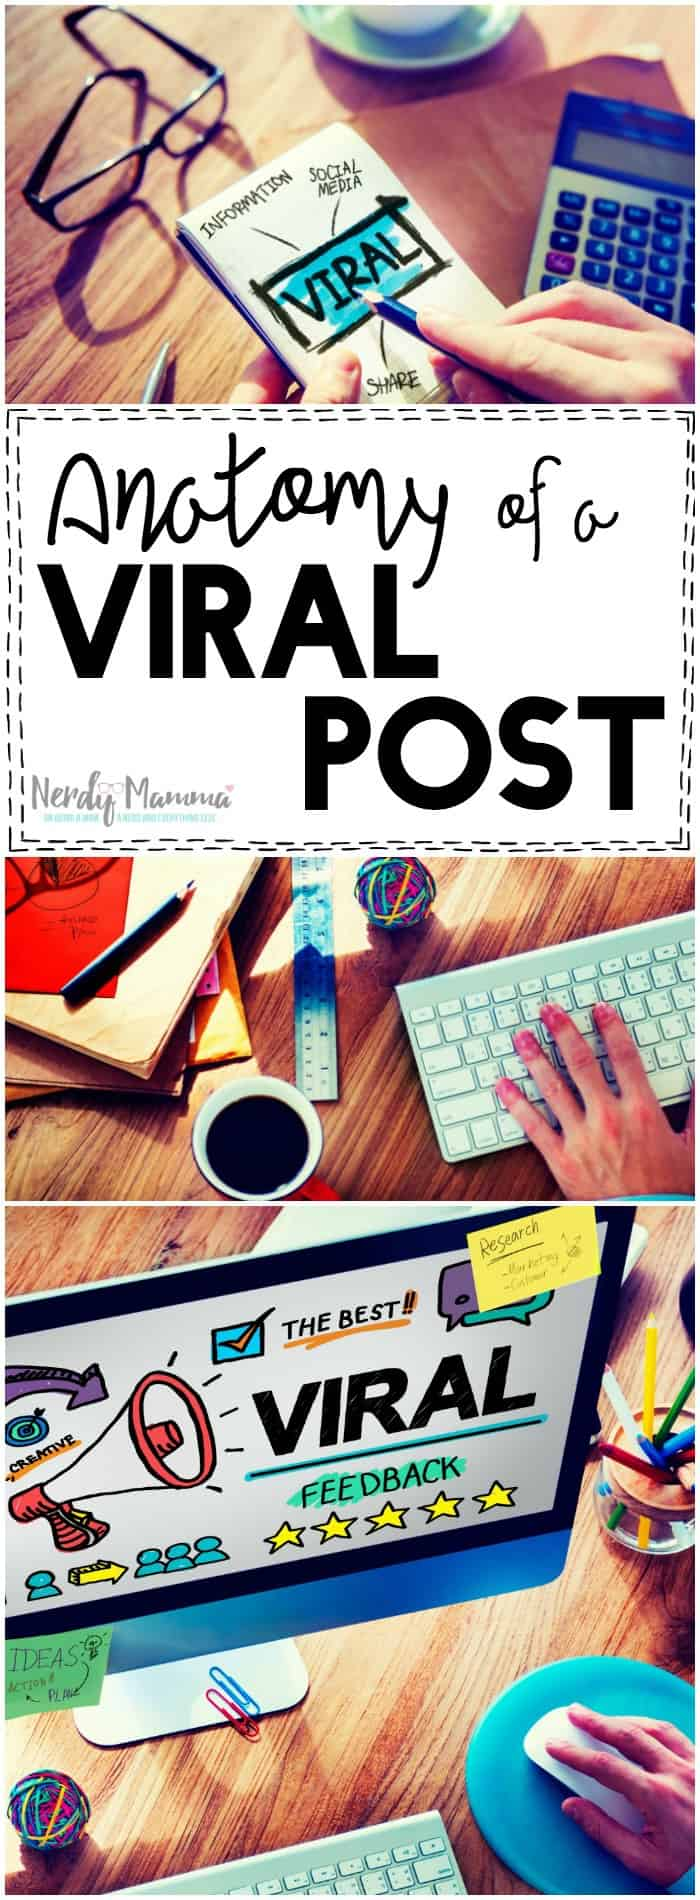 These tips on creating a viral post for your blog are so--simple. I really feel like I can write one now.